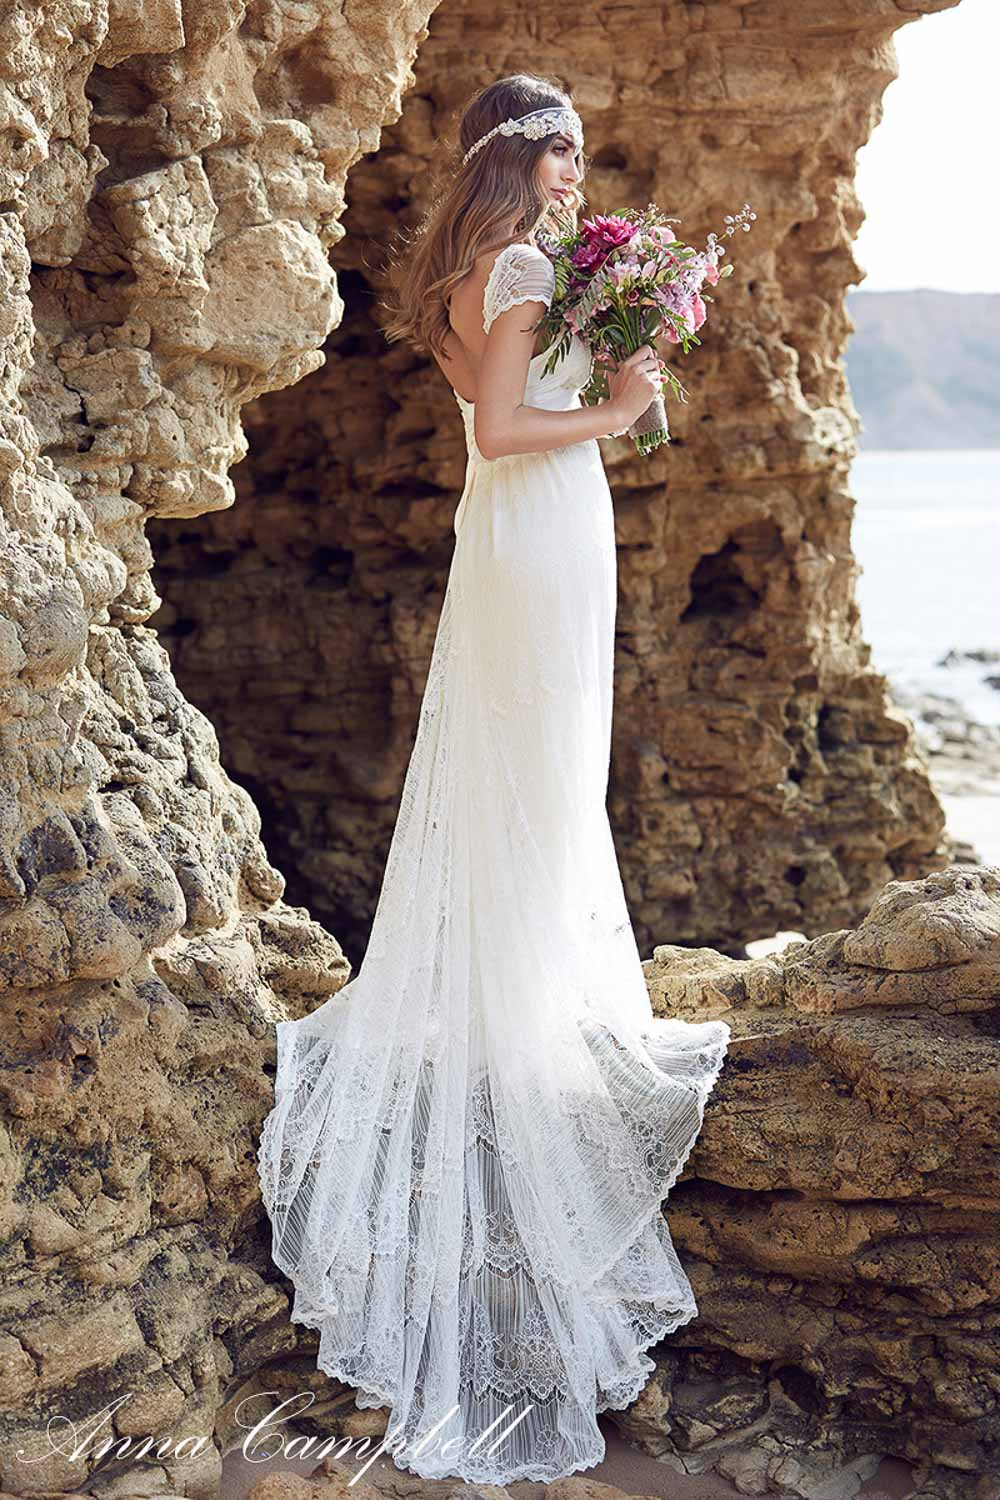 Anna Campbell Spirit Collection Wedding Dress 29